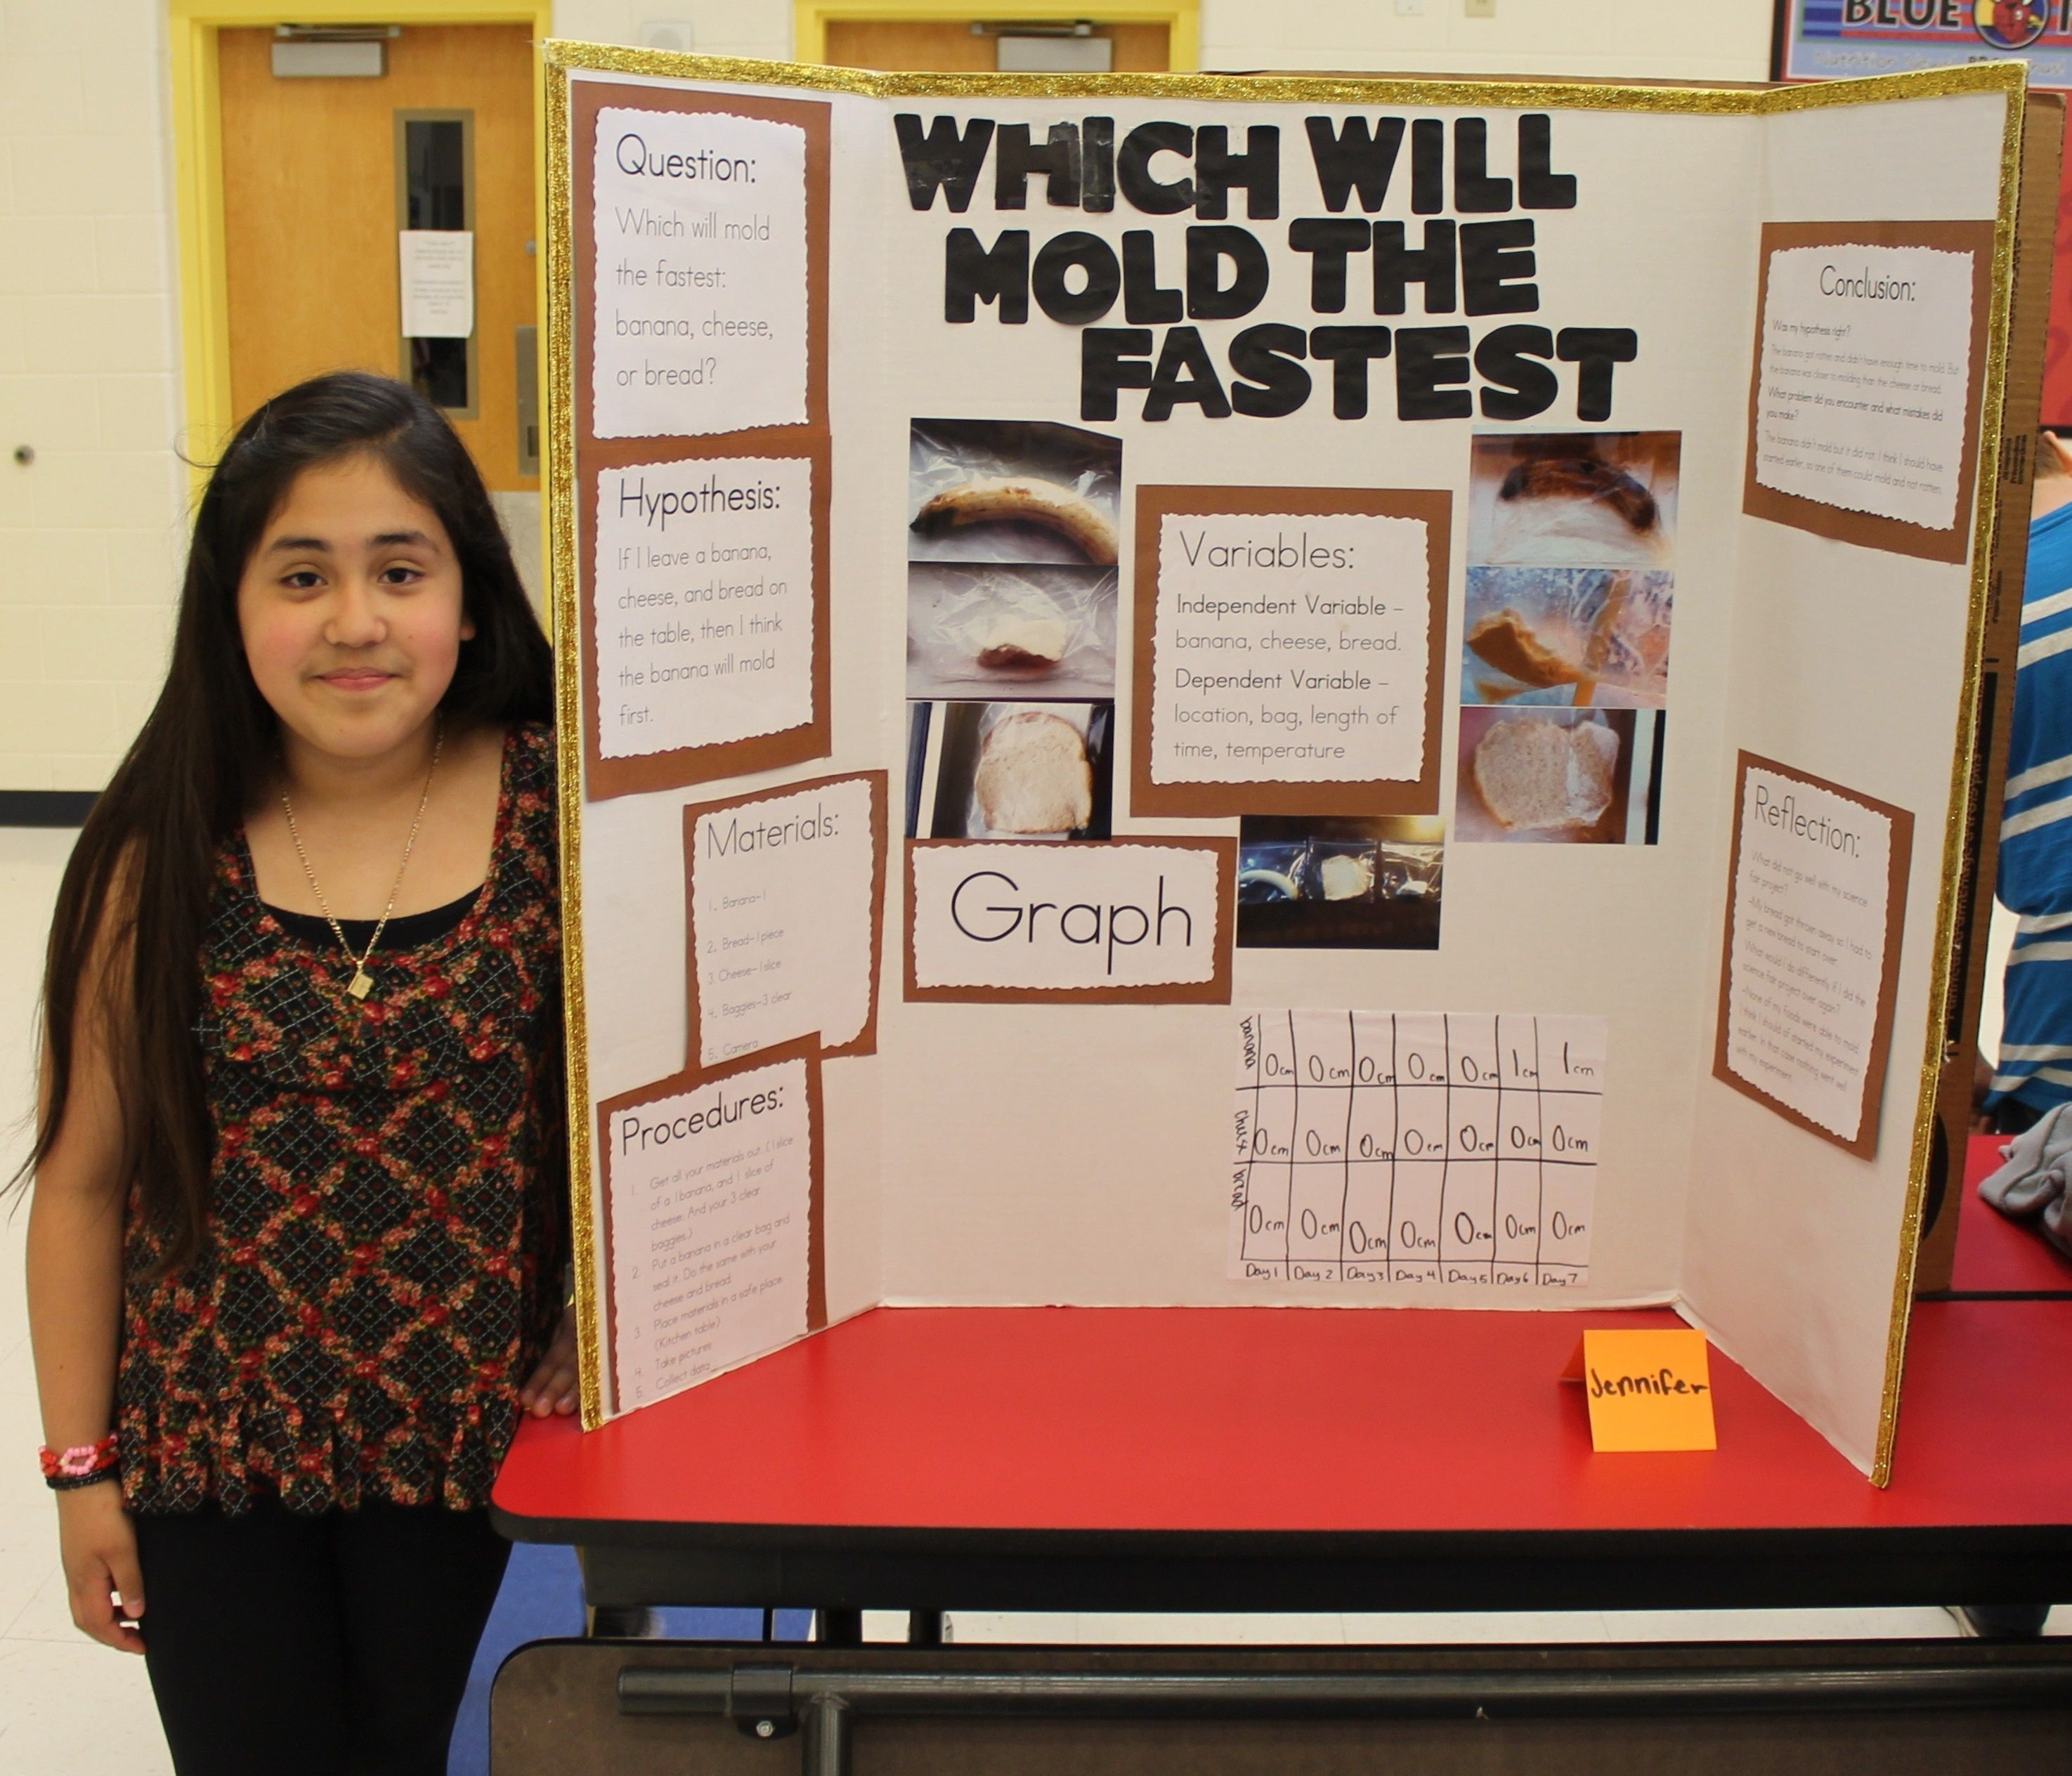 10 Great Science Project Ideas For 3Rd Graders easy science fair projects for 3rd grade idea google search 9 2020